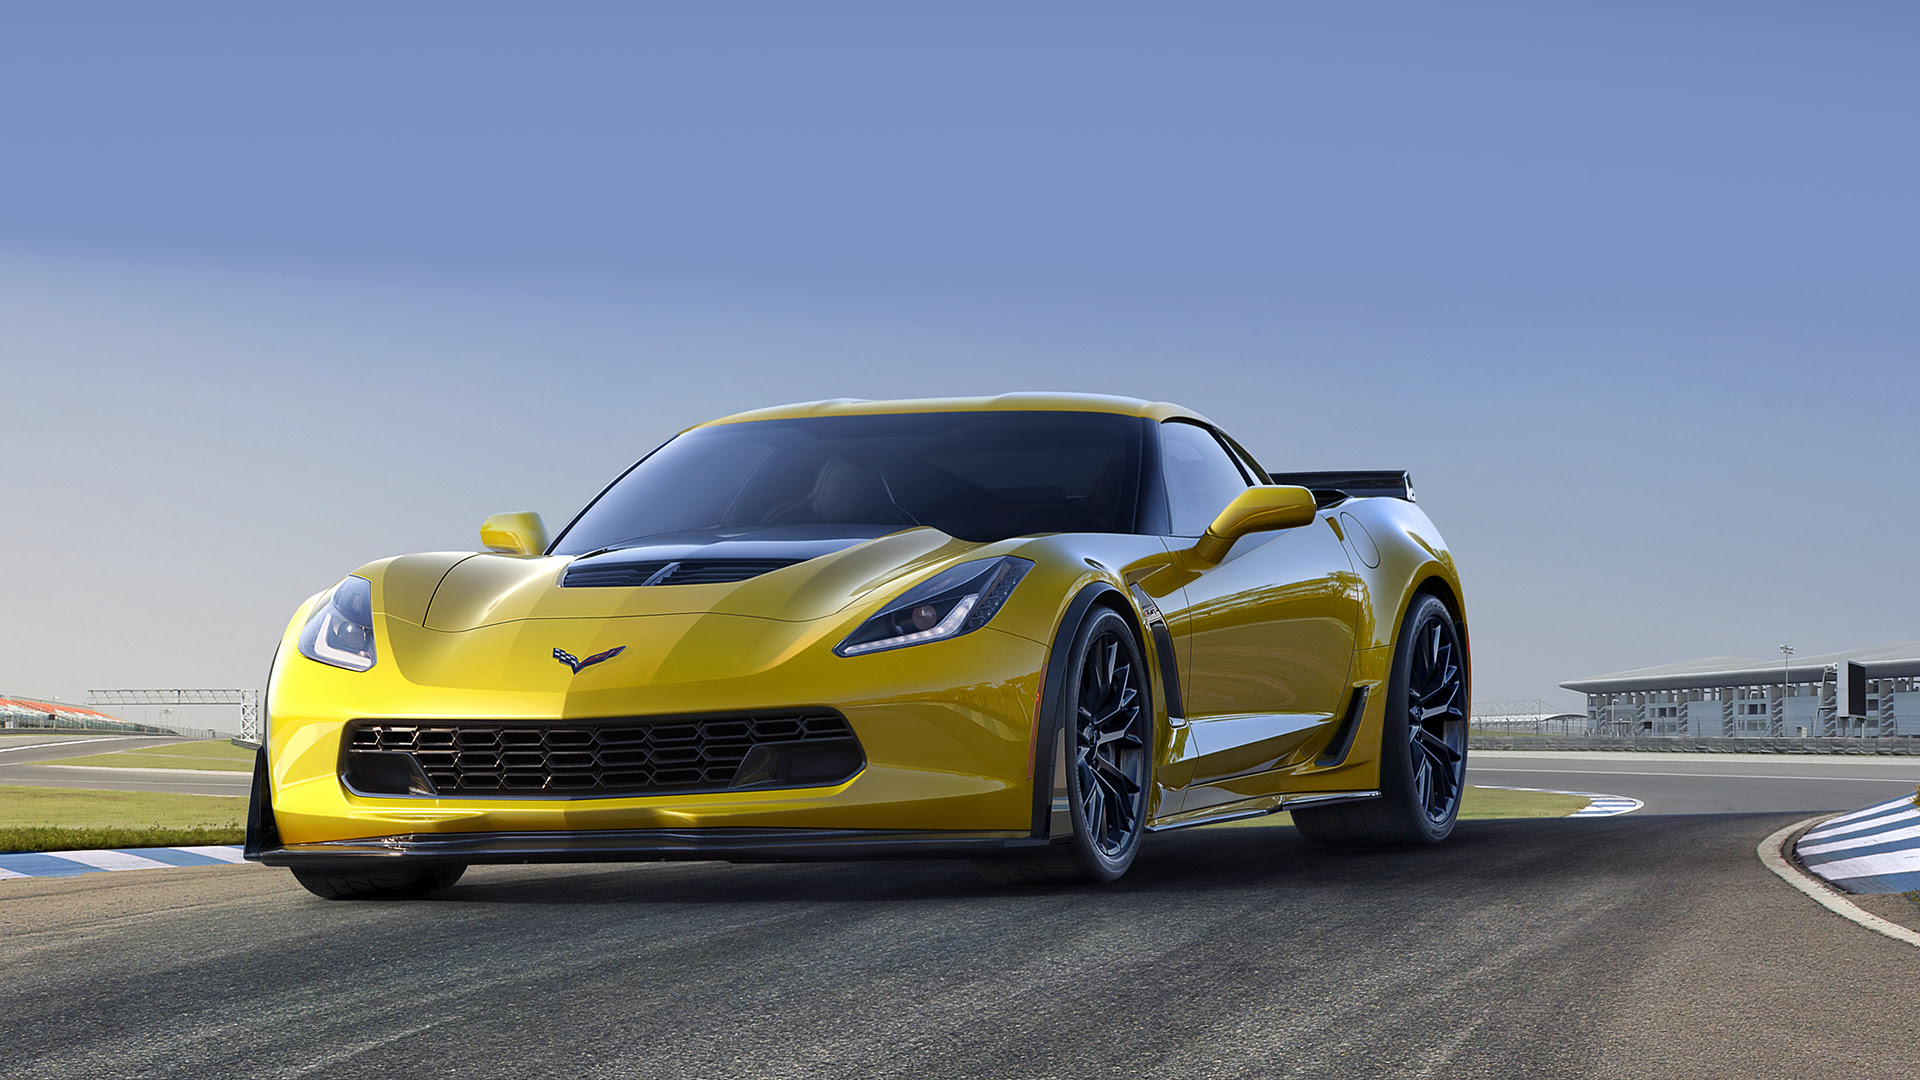 Corvette Z06 HD Wallpaper  WallpaperSafari